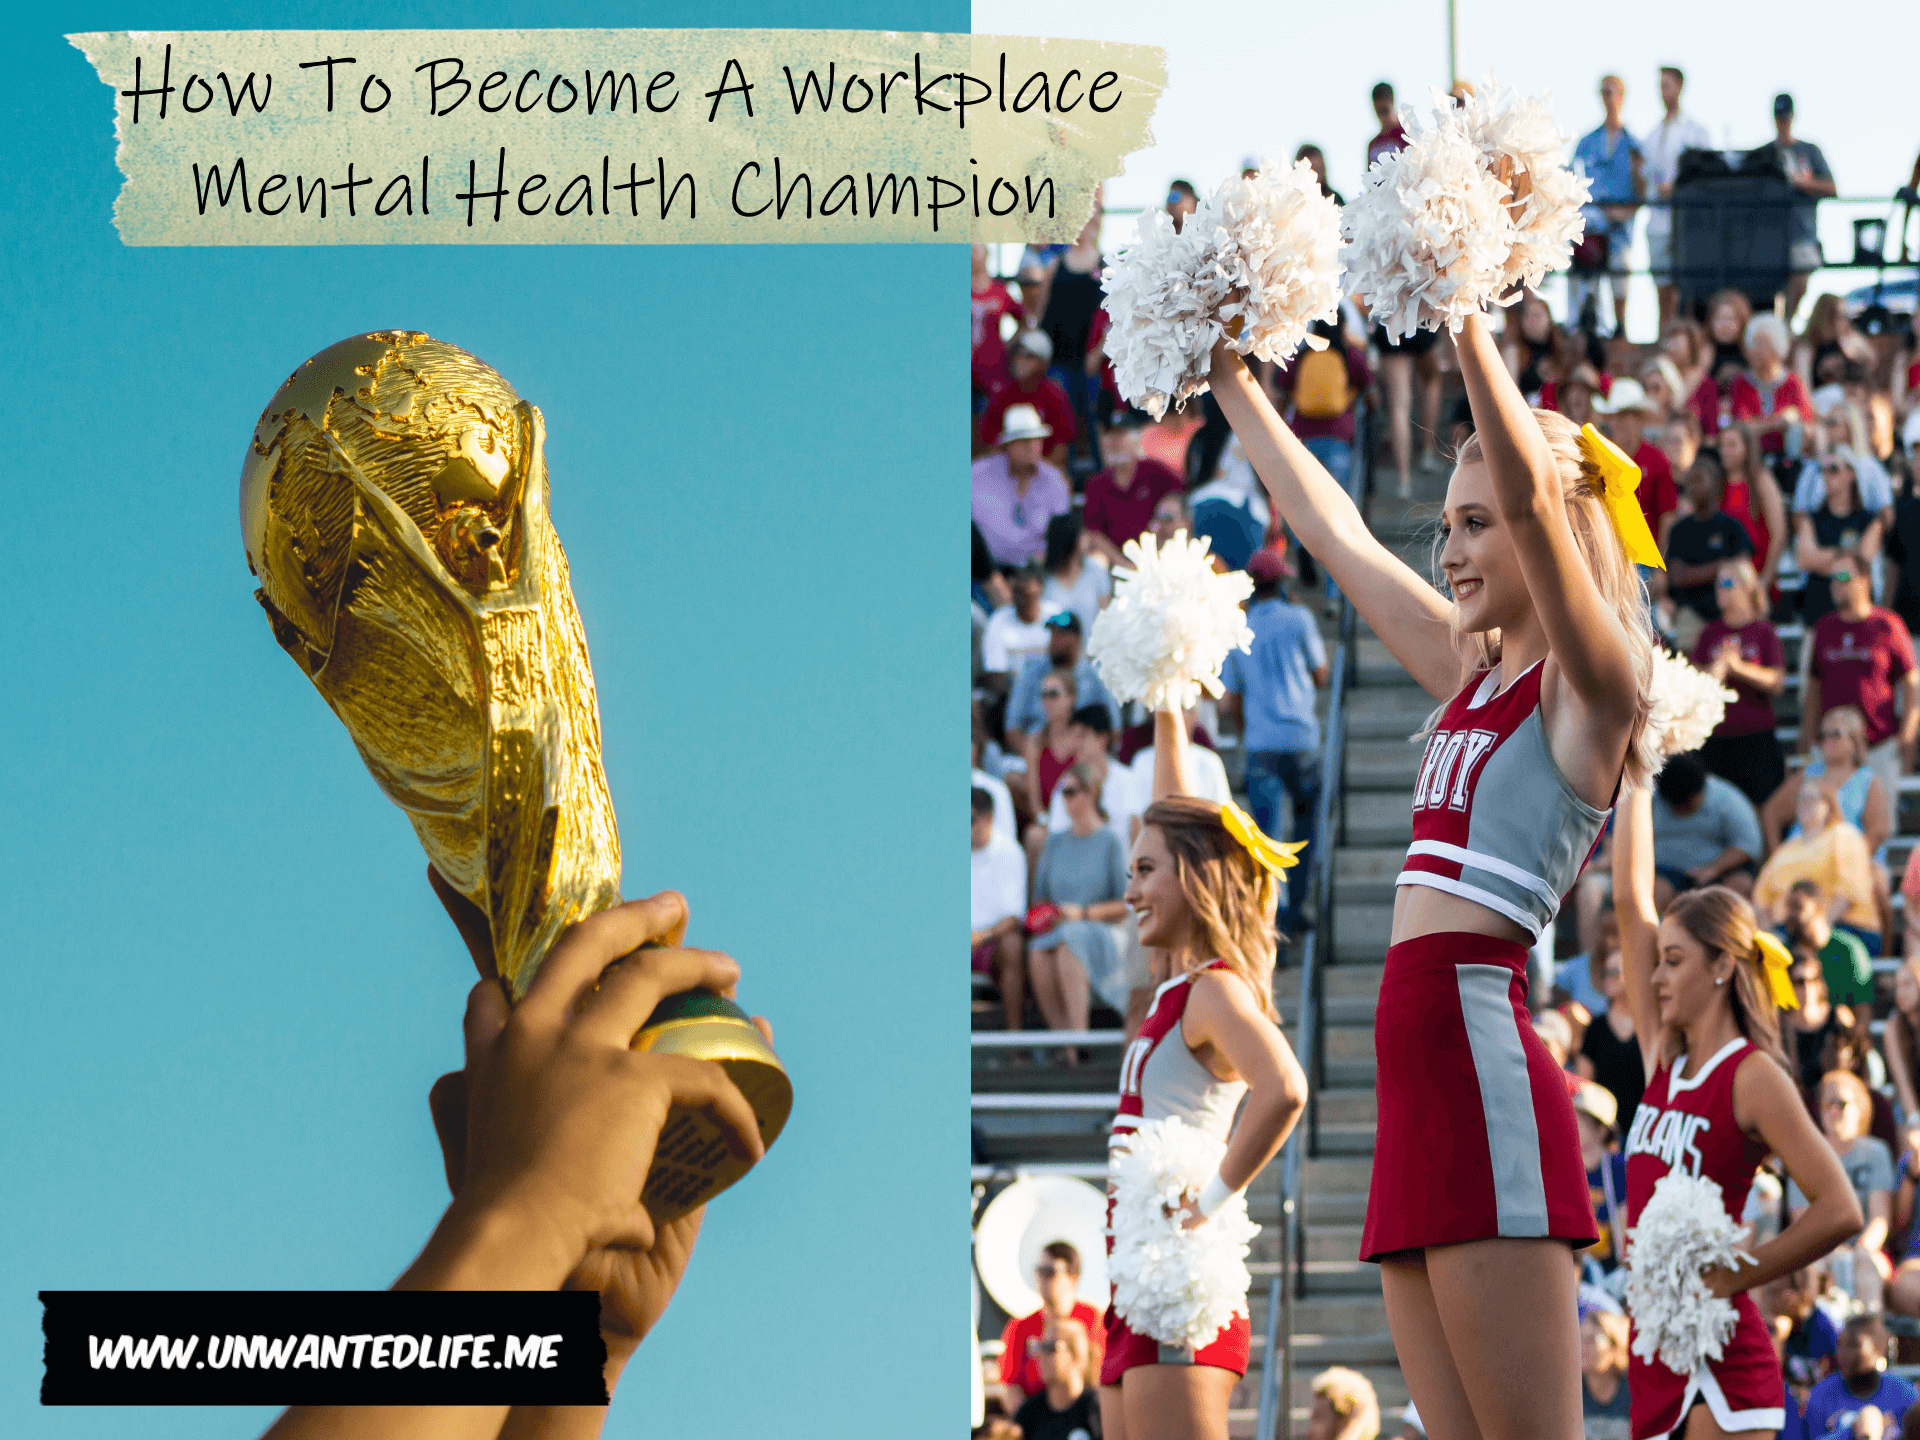 The image is split in two down the middle with the left image being of someone holding up the world cup and the right image being of a group of cheerleaders cheering to represent - How To Become A Workplace Mental Health Champion